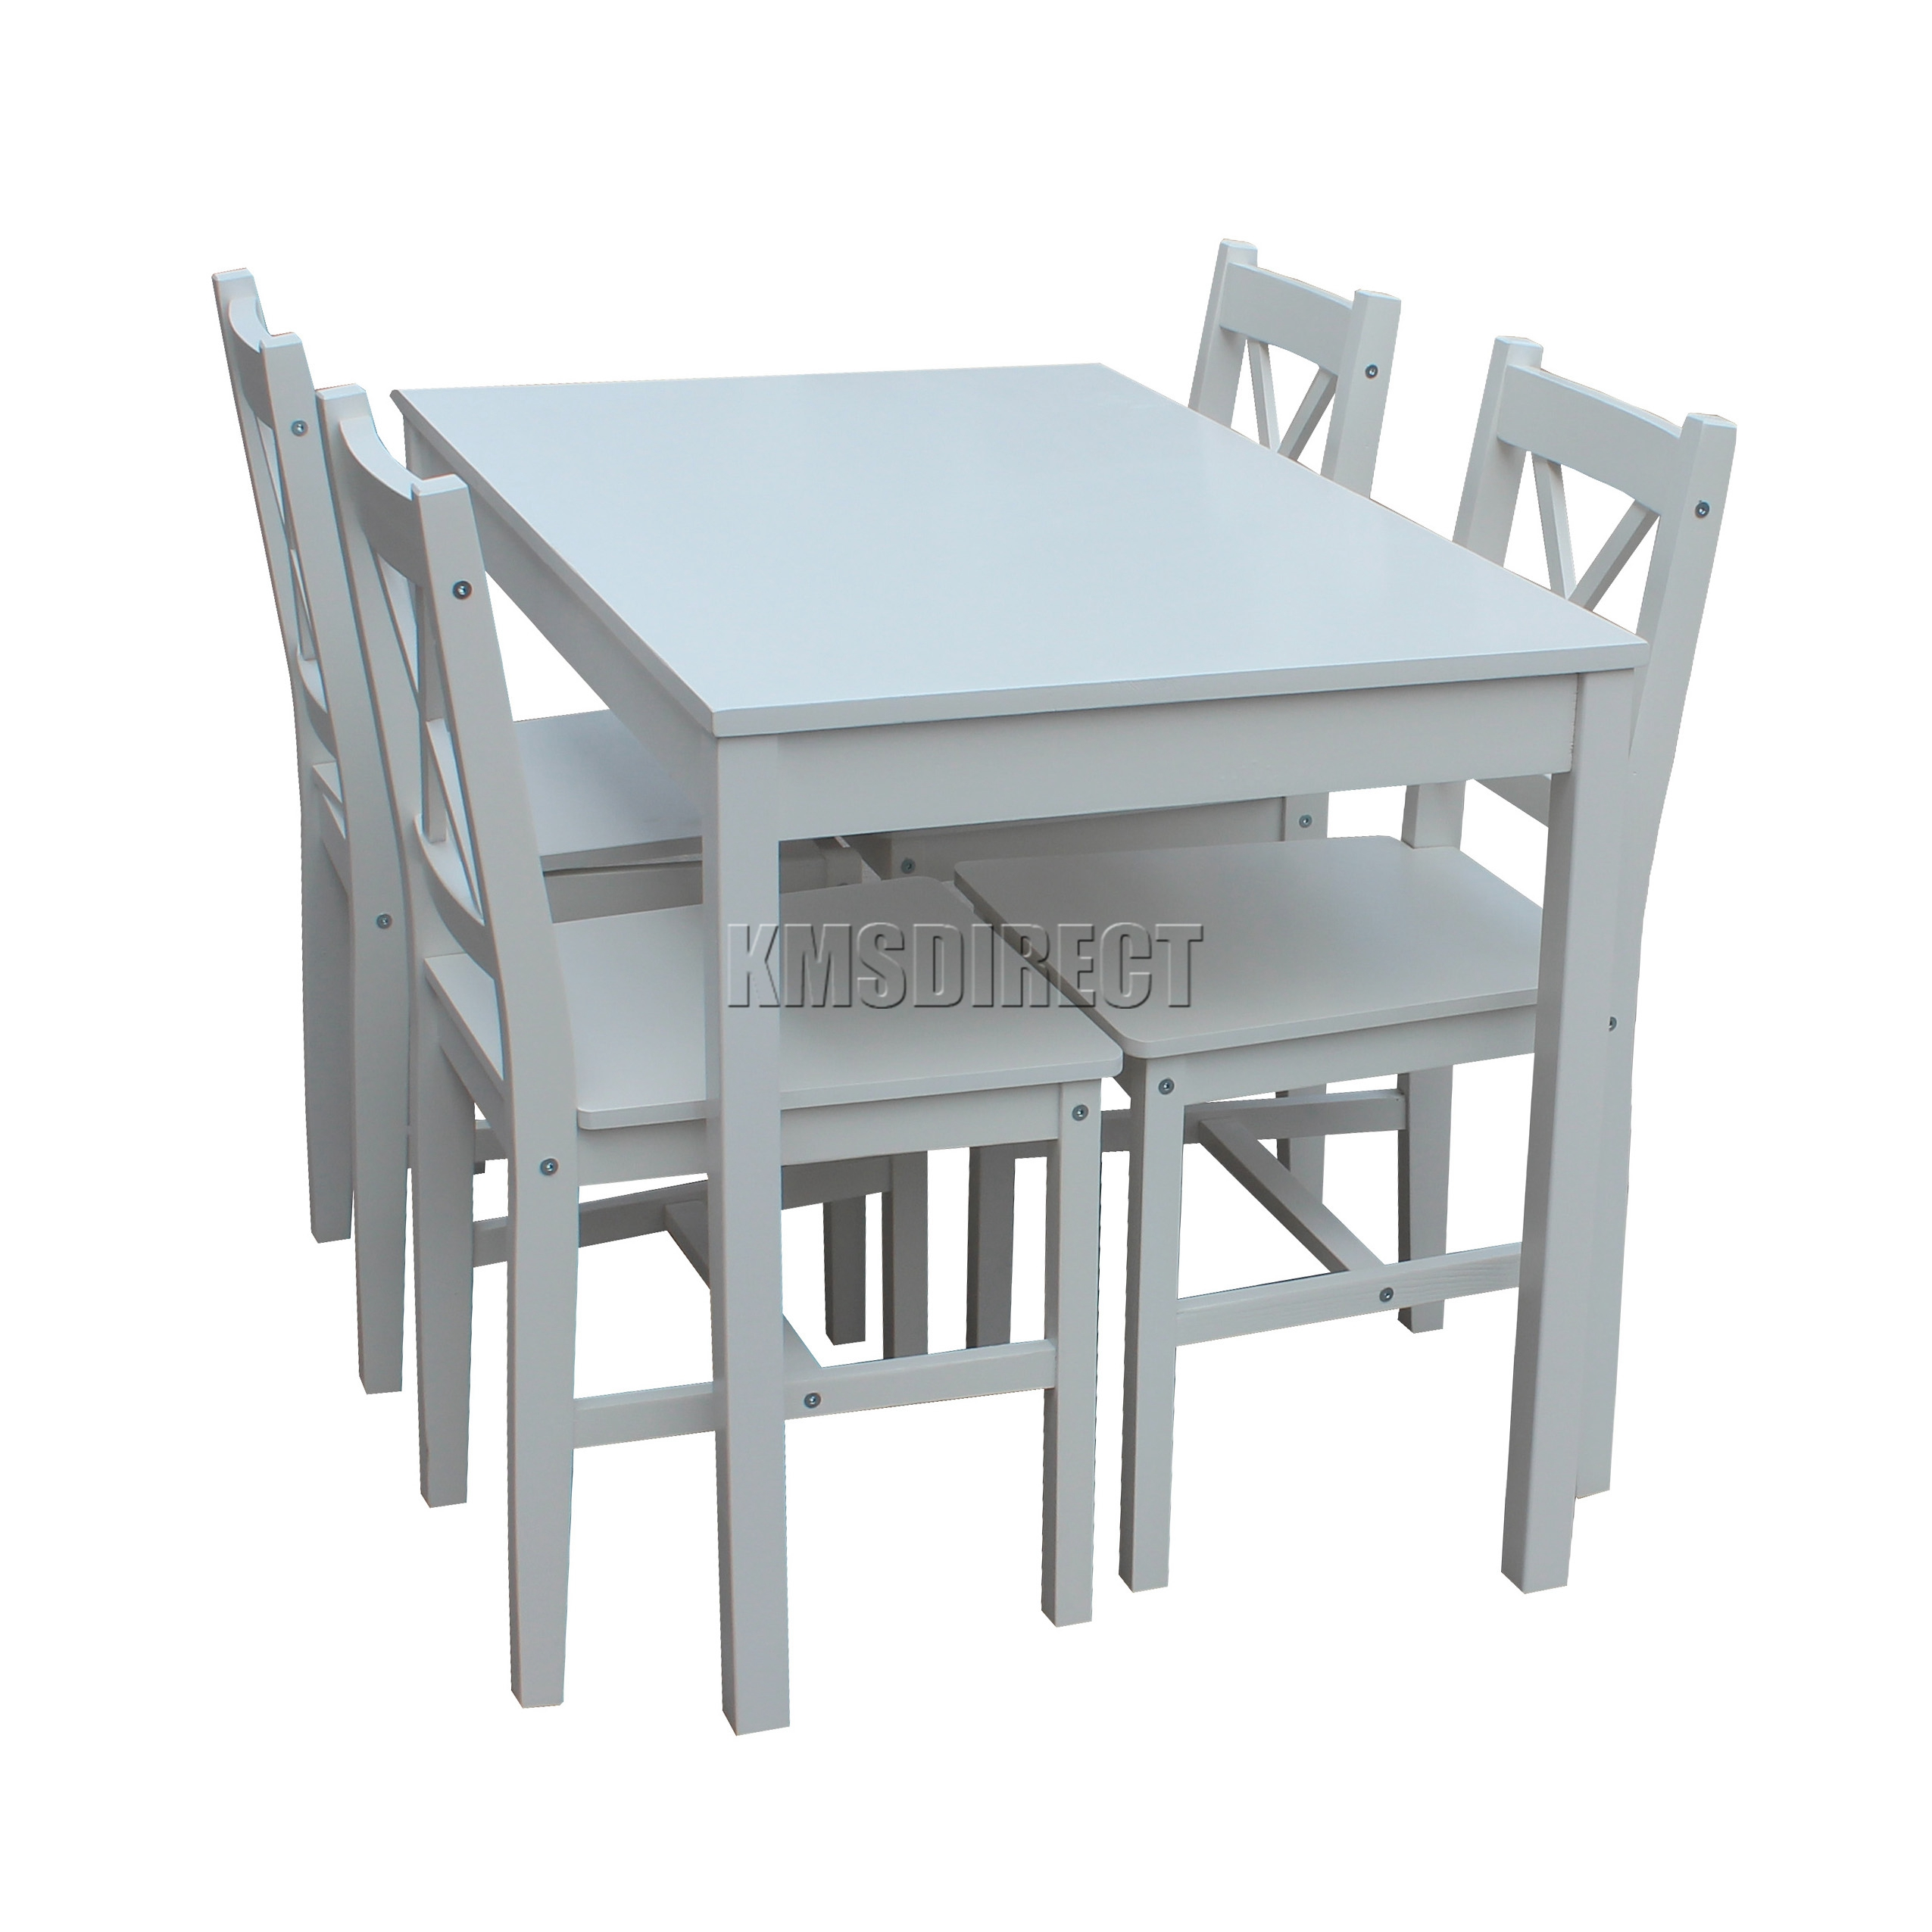 foxhunter solid wooden dining table with 4 chairs set kitchen furniture white ebay. Black Bedroom Furniture Sets. Home Design Ideas